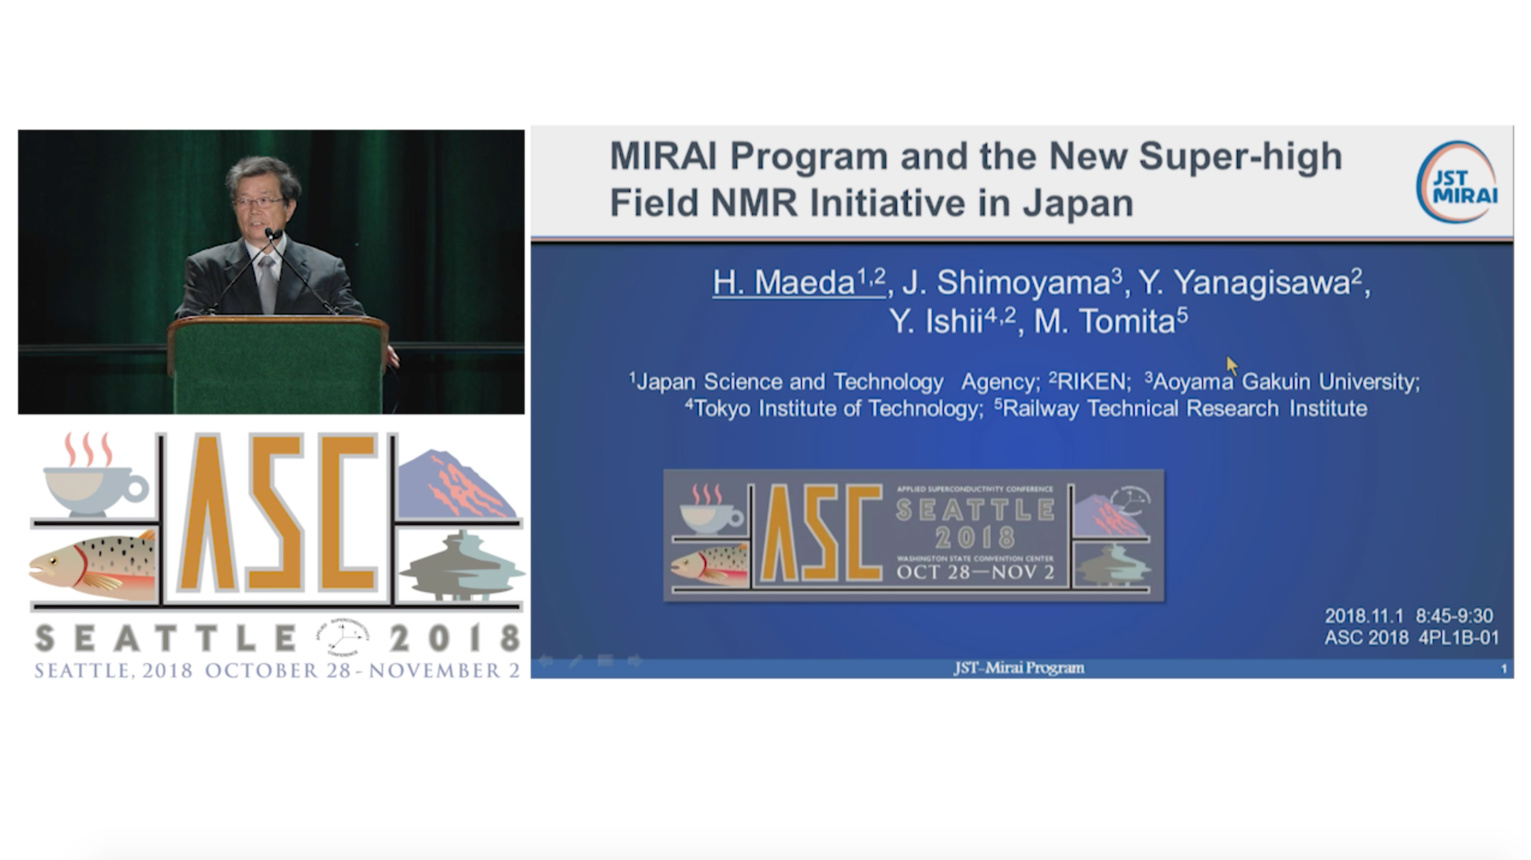 MIRAI Program and the New Super-high Field NMR Initiative in Japan - Applied Superconductivity Conference 2018